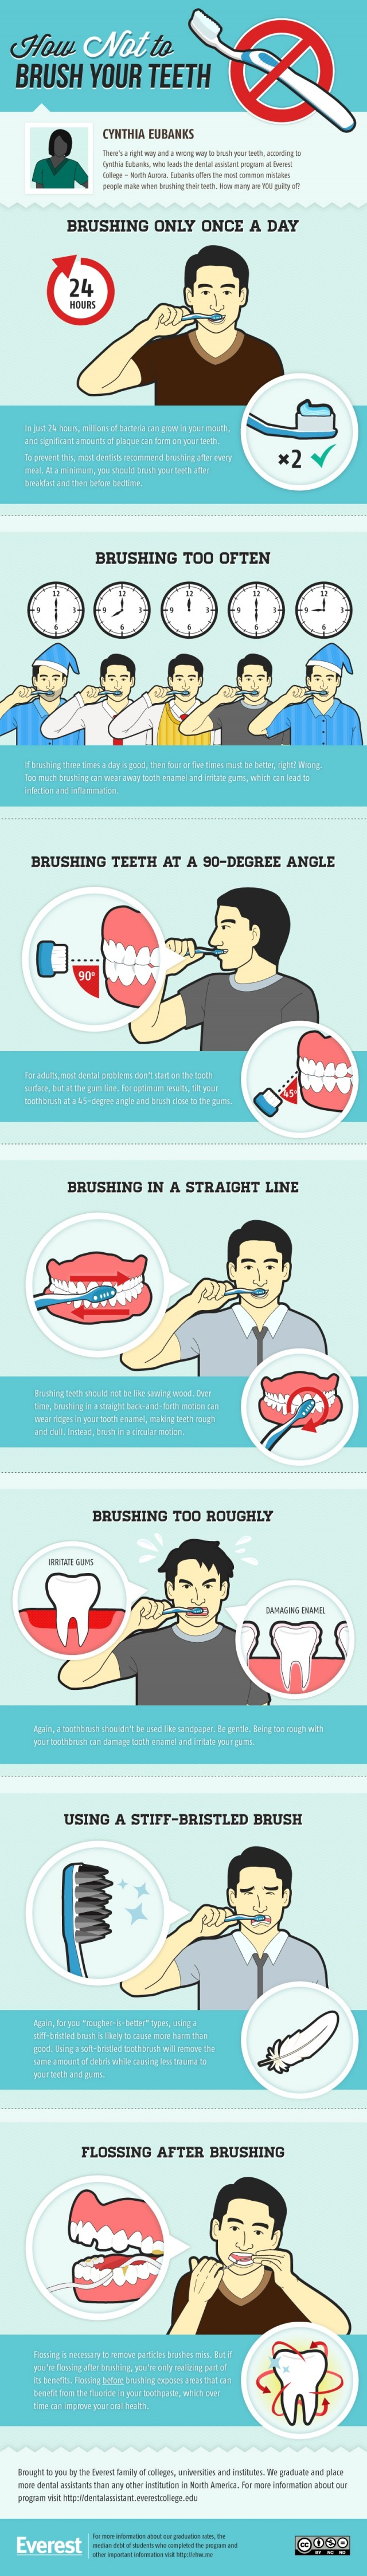 Tooth Brushing 101-Infographic